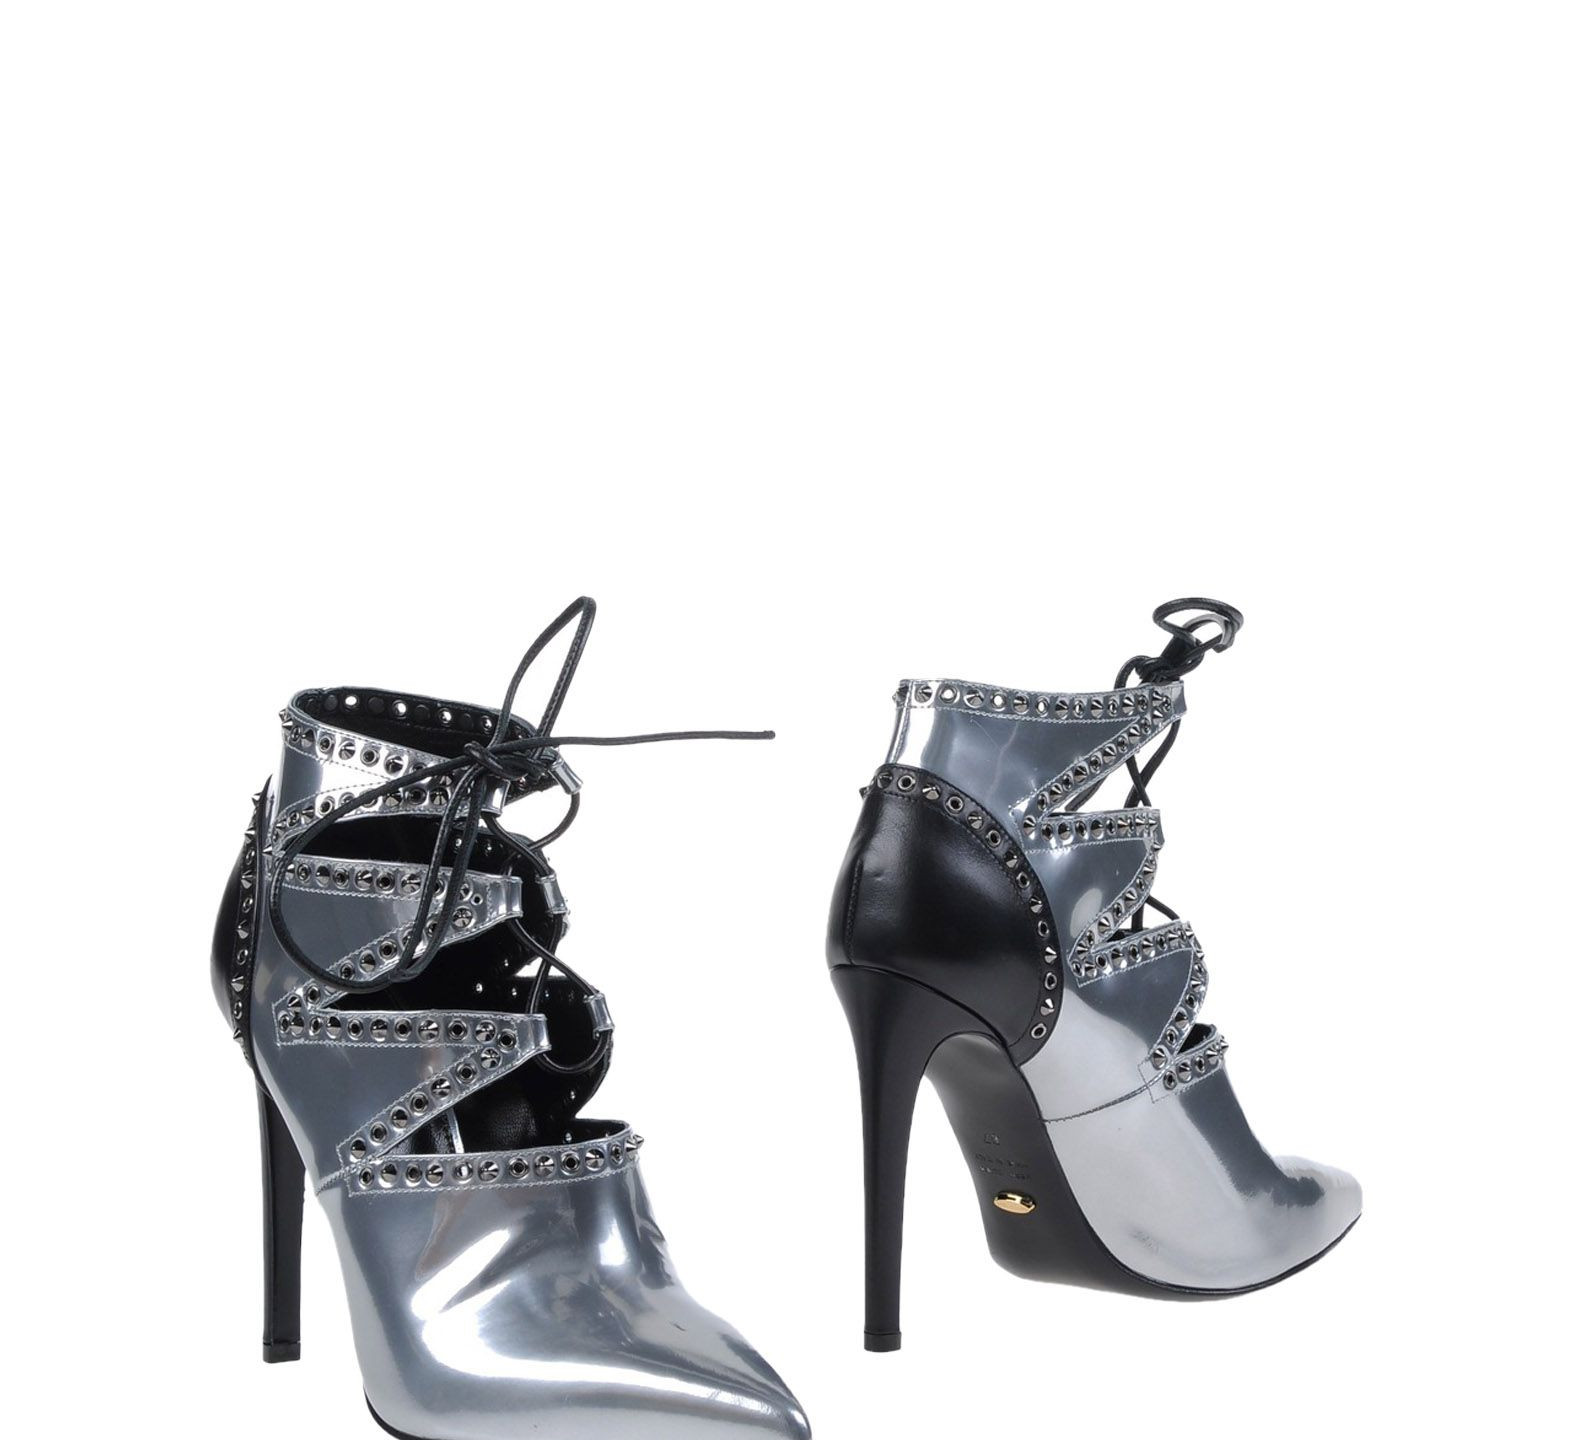 If you have the money to invest in a pair of fab shoes like these Sergio Rossi ankle boots - you will certainly make a statement USD 1289.00